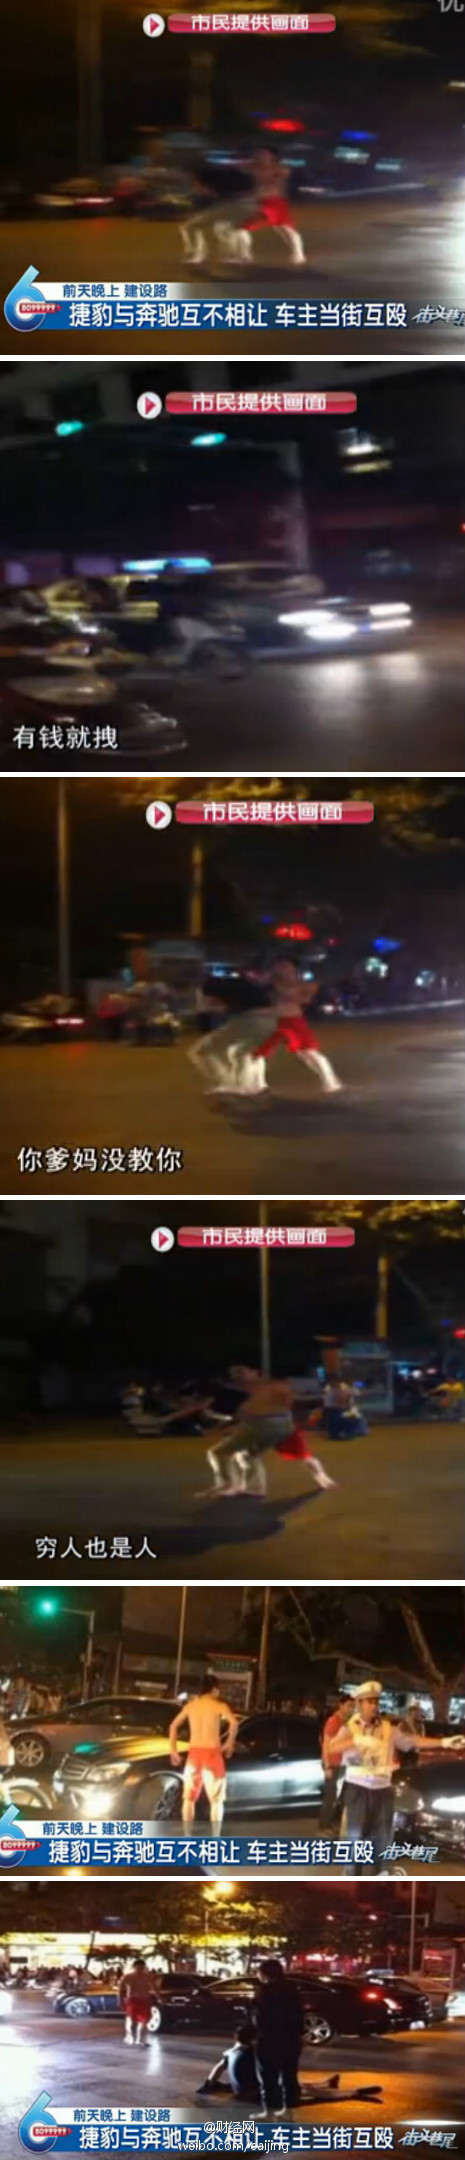 china-kunming-mercedes-benz-driver-beats-up-jaguar-driver-says-poor-people-are-people-too